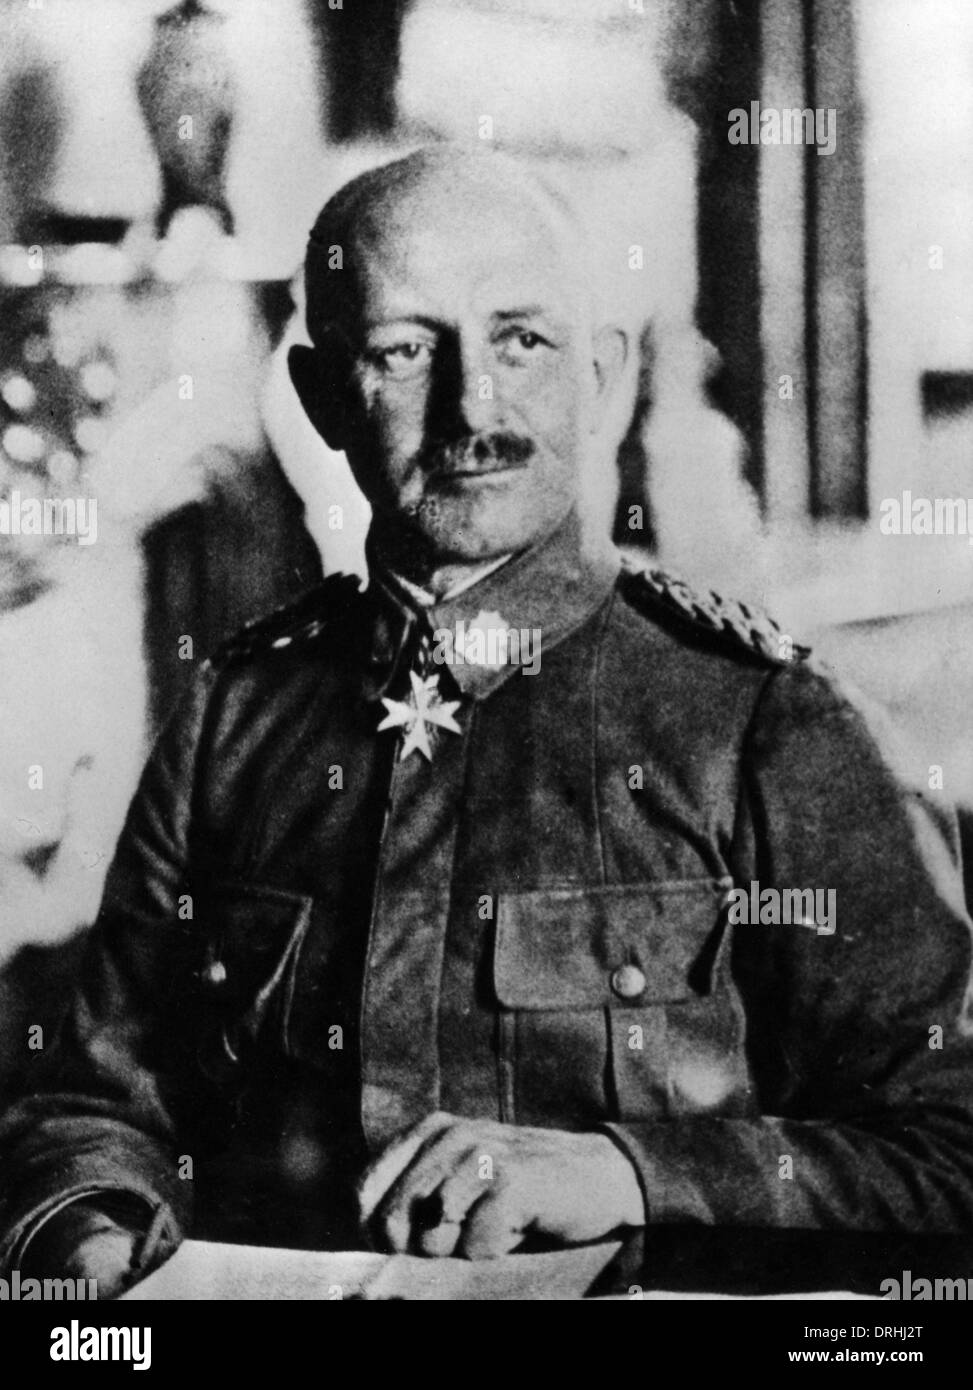 Paul Emil von Lettow-Vorbeck, German army officer, WW1 - Stock Image